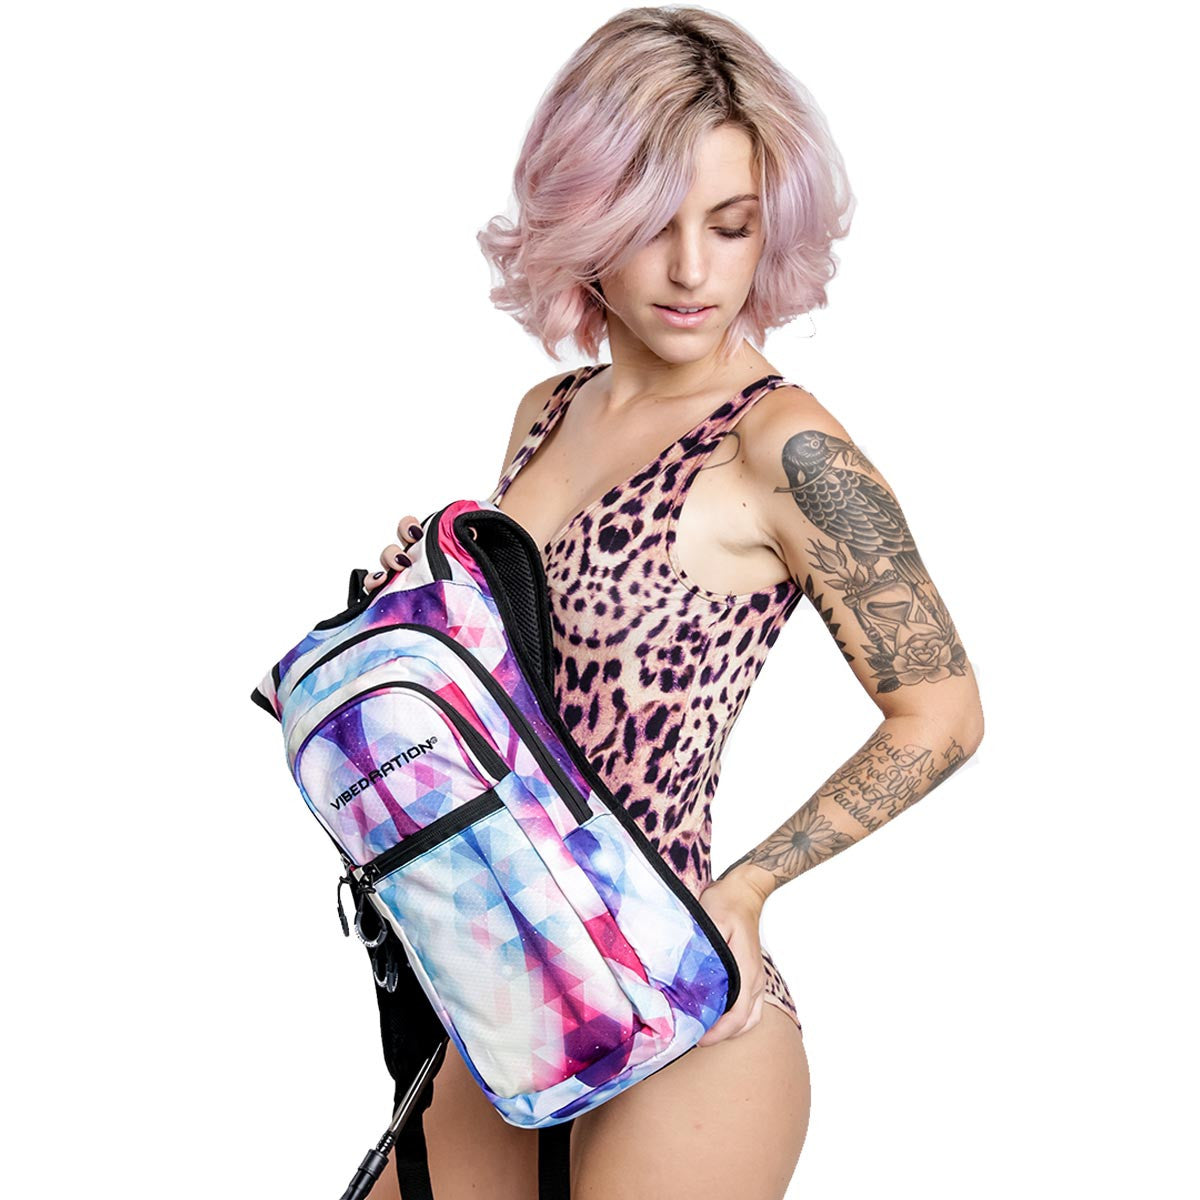 Female holding Galactic hydration pack